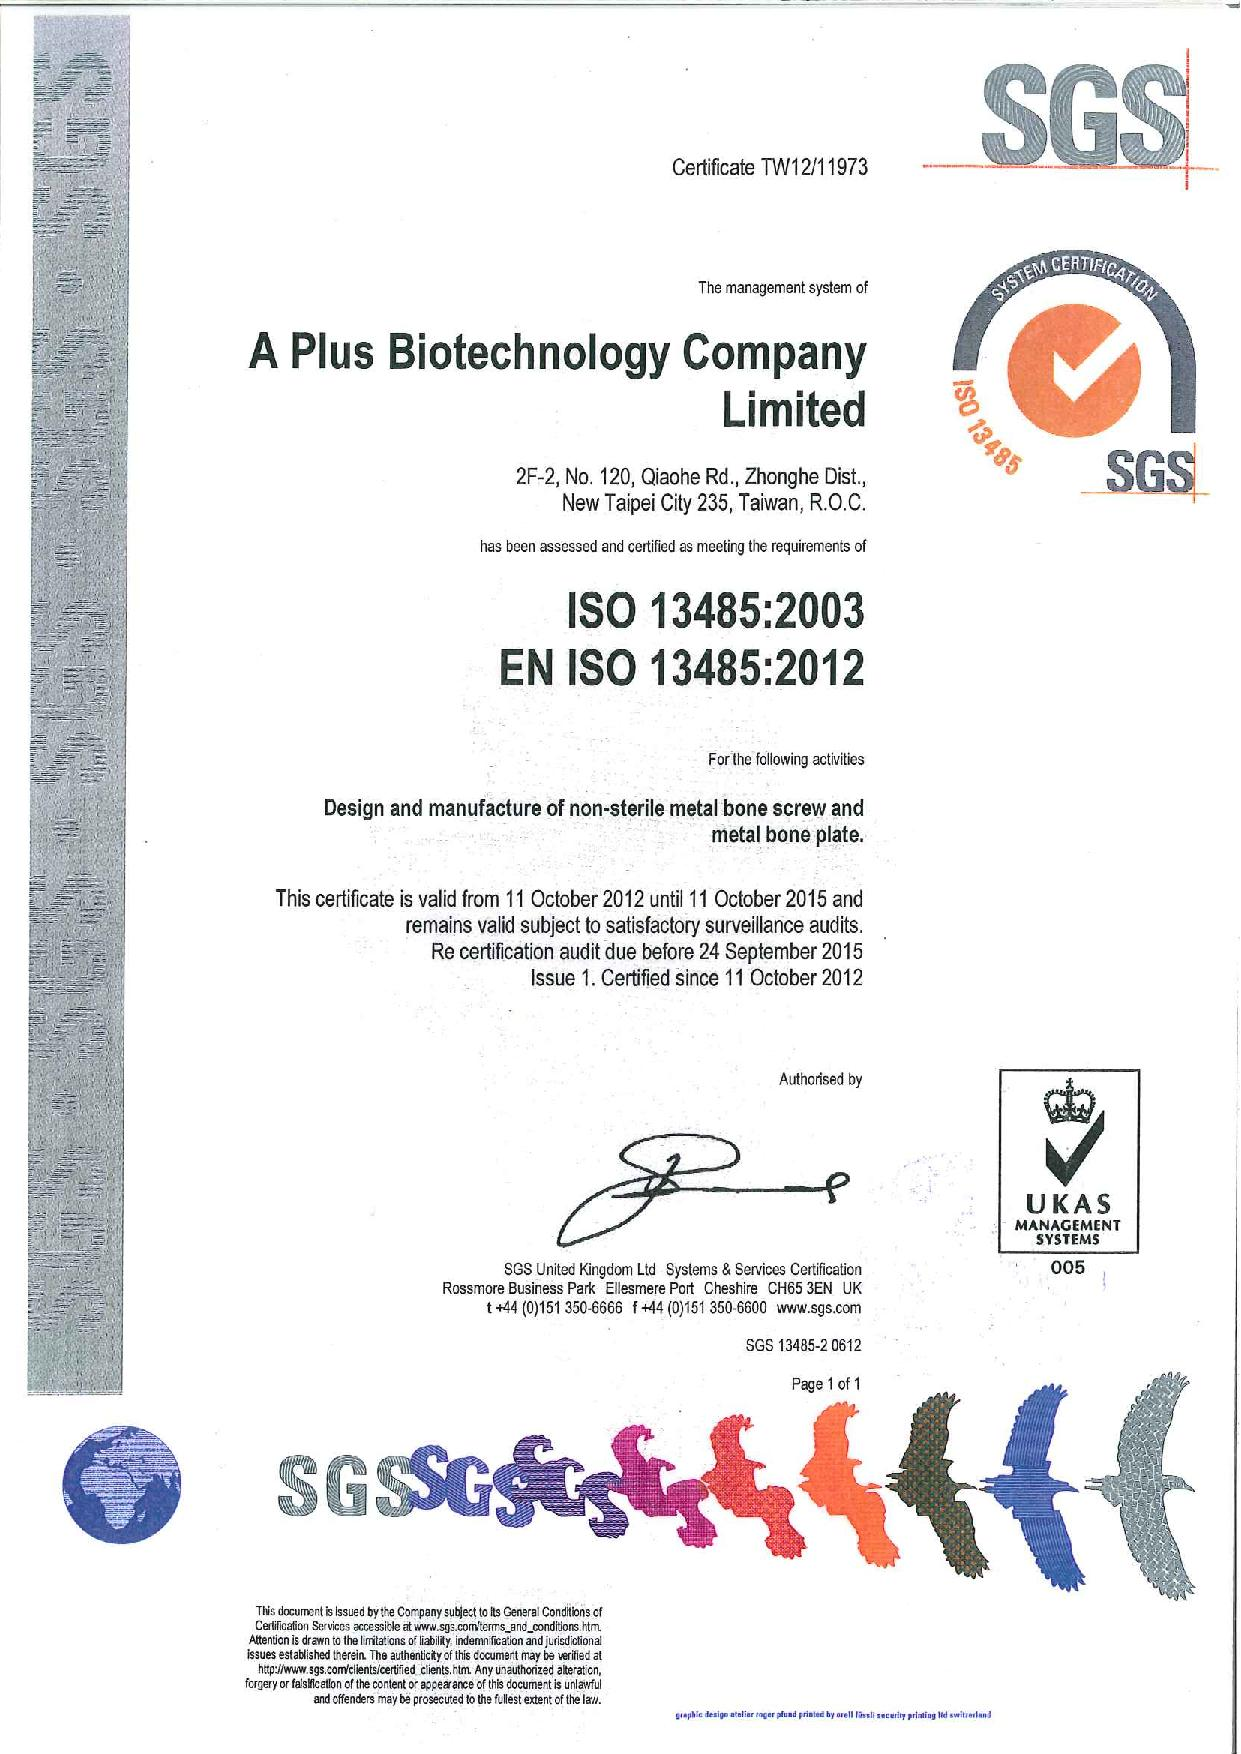 A Plus Biotechnology Corporation Limited